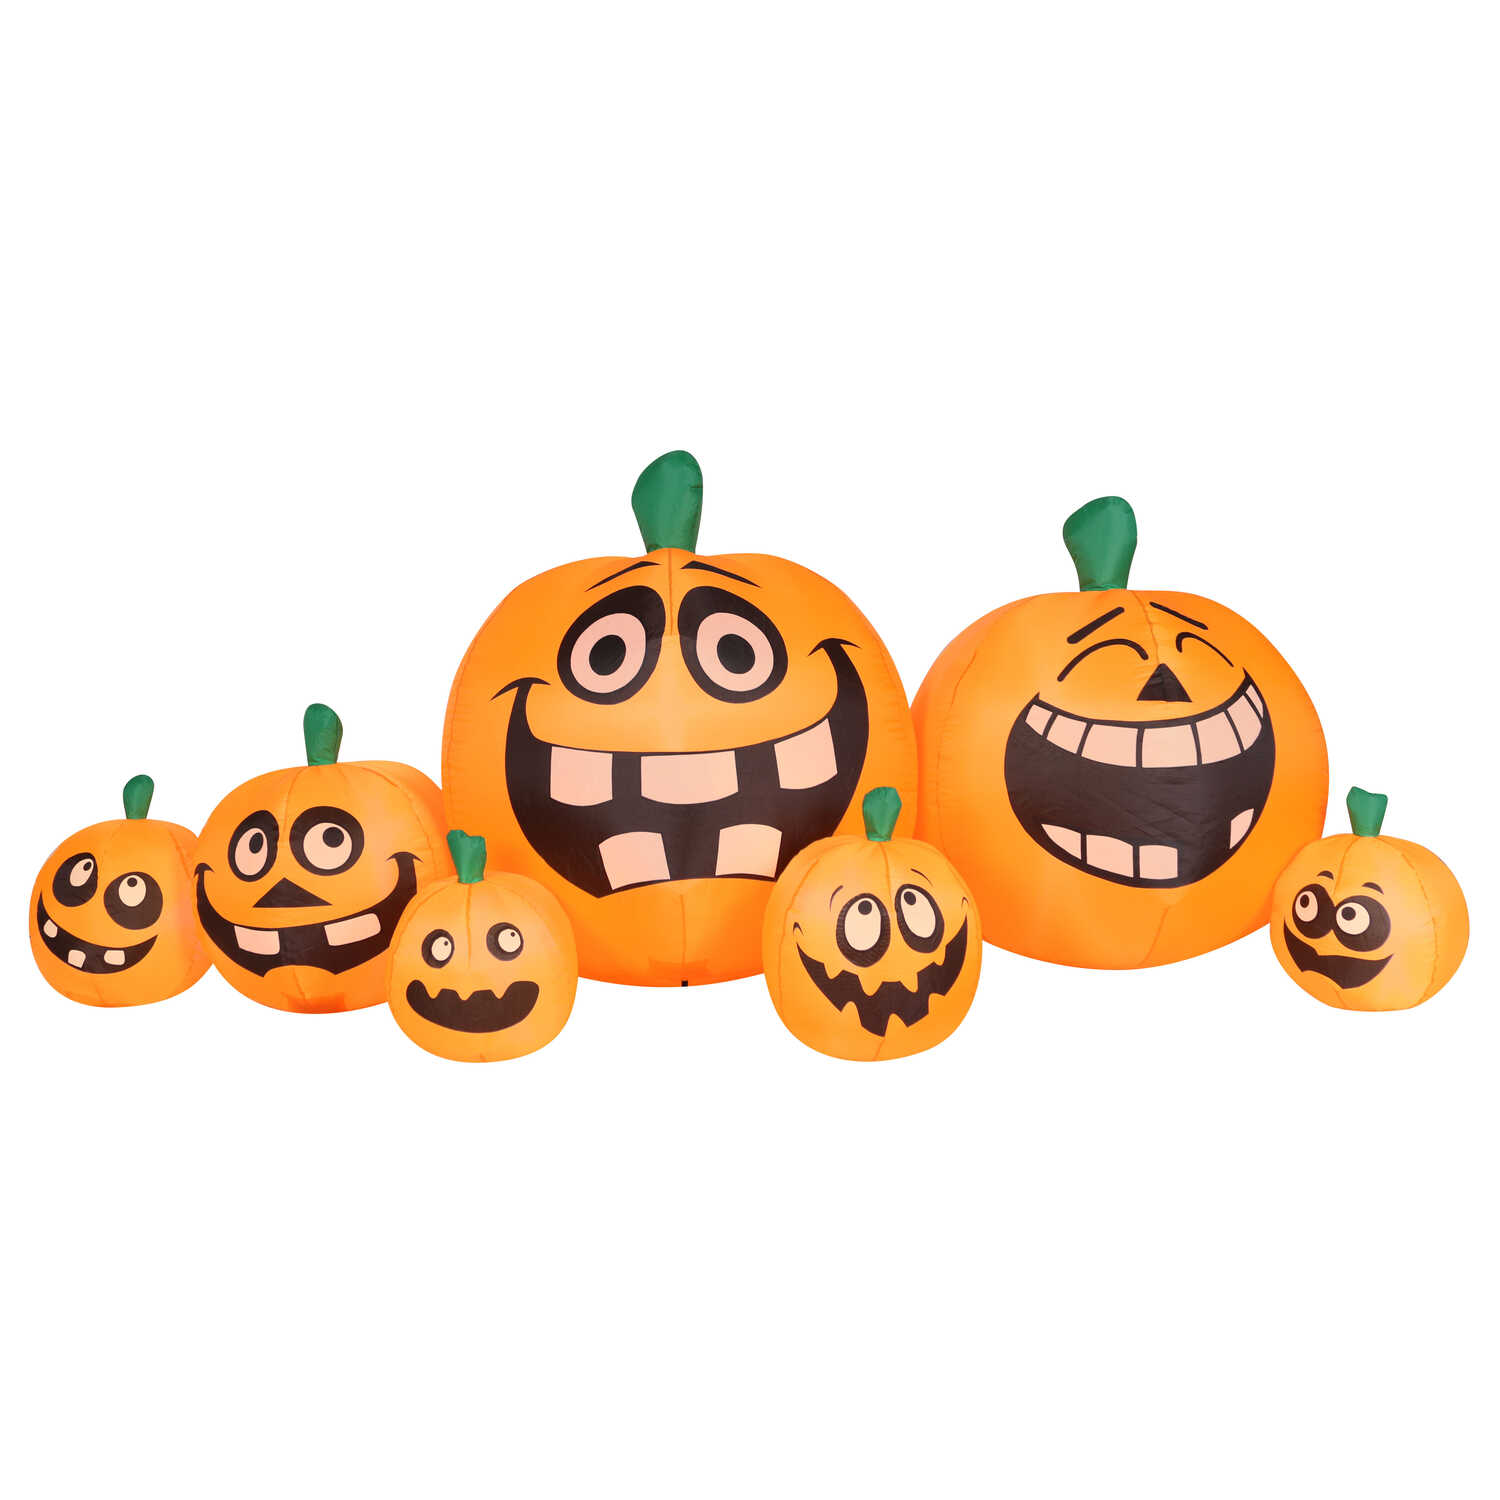 Occasions  Pumpkin Patch  Lighted Halloween Decoration  40 in. H x 44 in. W x 102 in. L 1 pk